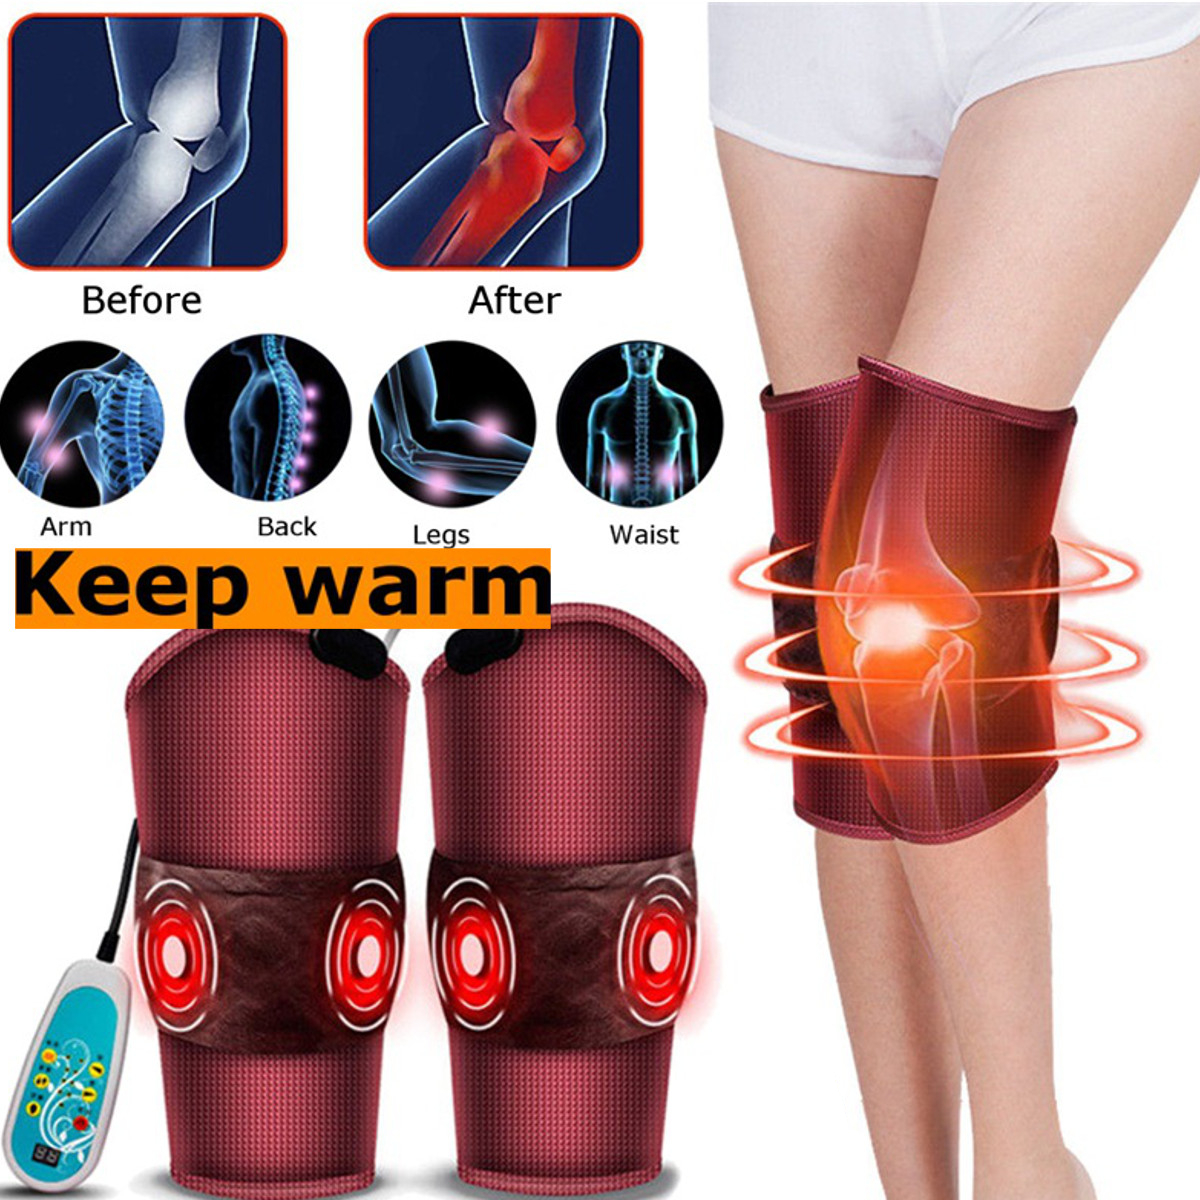 Health Care Massage & Relaxation Electric Knee Leg Massager Pad Heating Vibrating Physical Therapy Arm Waist Massage For Arthritis Rheumatism Relieve Health Care